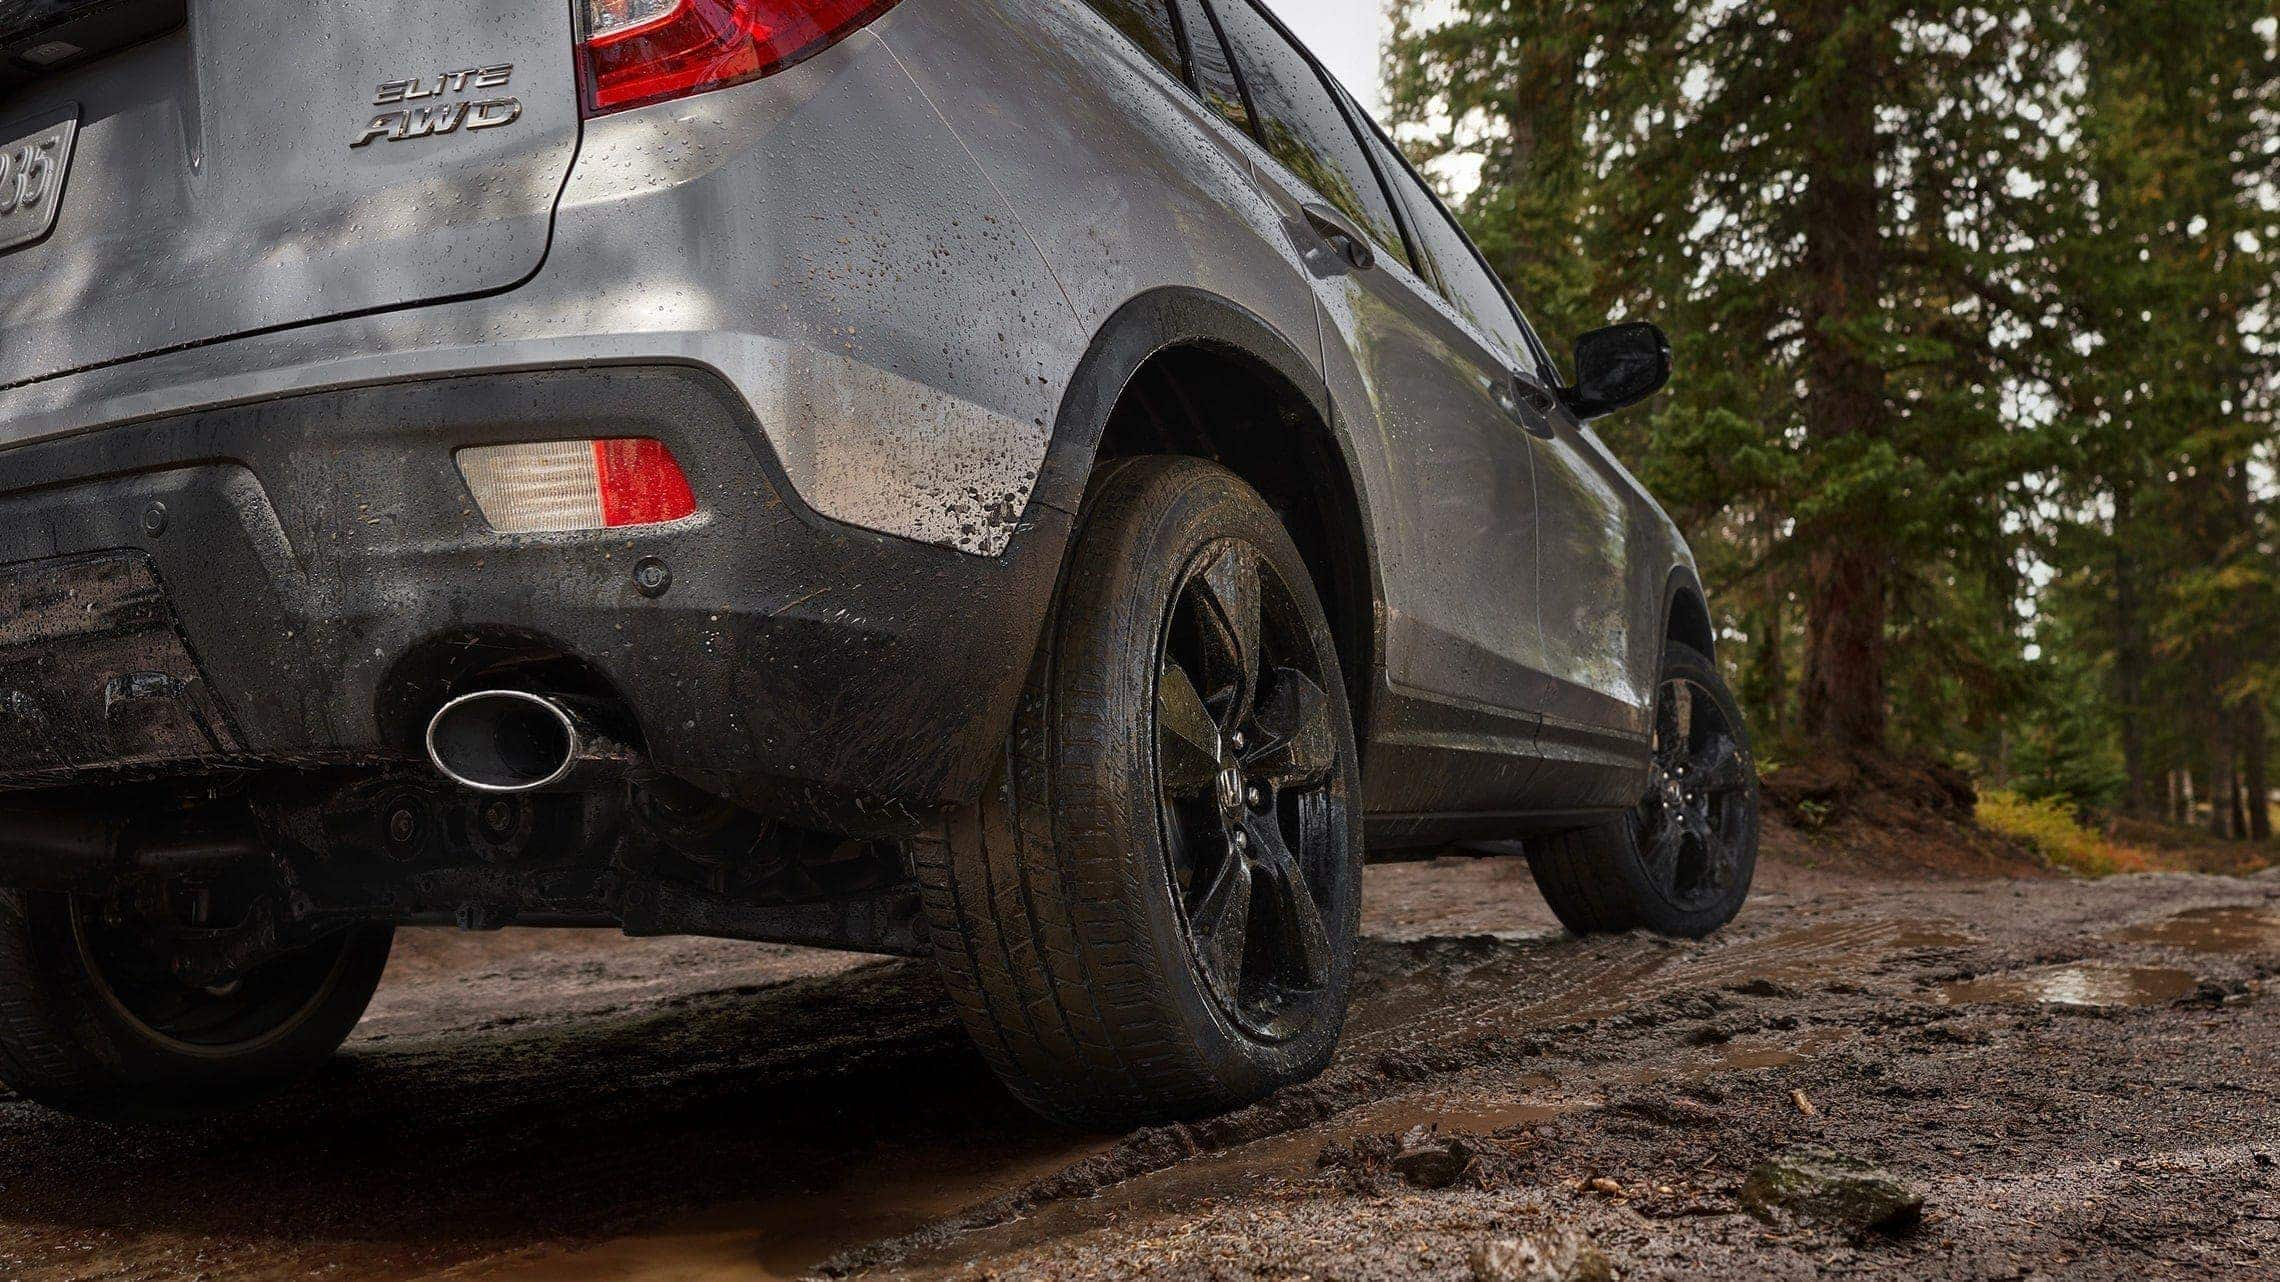 Passenger-side 3/4 view of 2019 Honda Passport Elite in Lunar Silver Metallic demonstrating all-season tires covered in mud on rocky terrain.